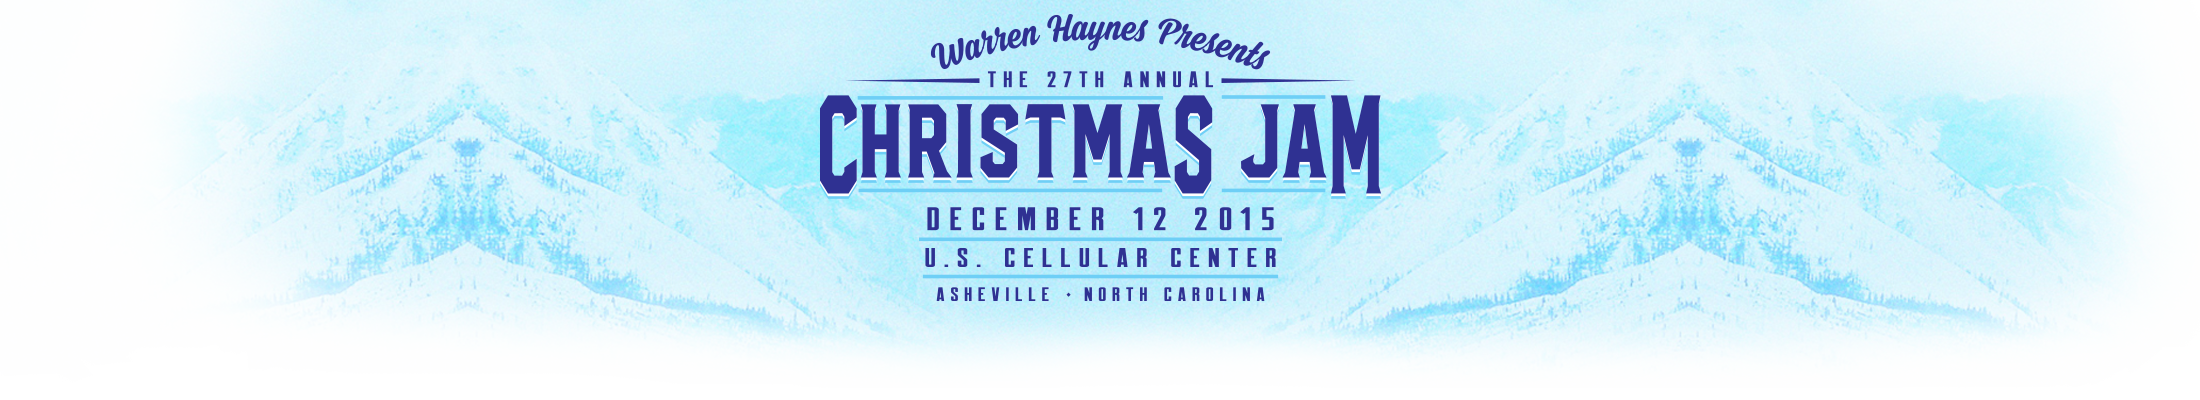 Warren Haynes Presents: The 27th Annual Christmas Jam